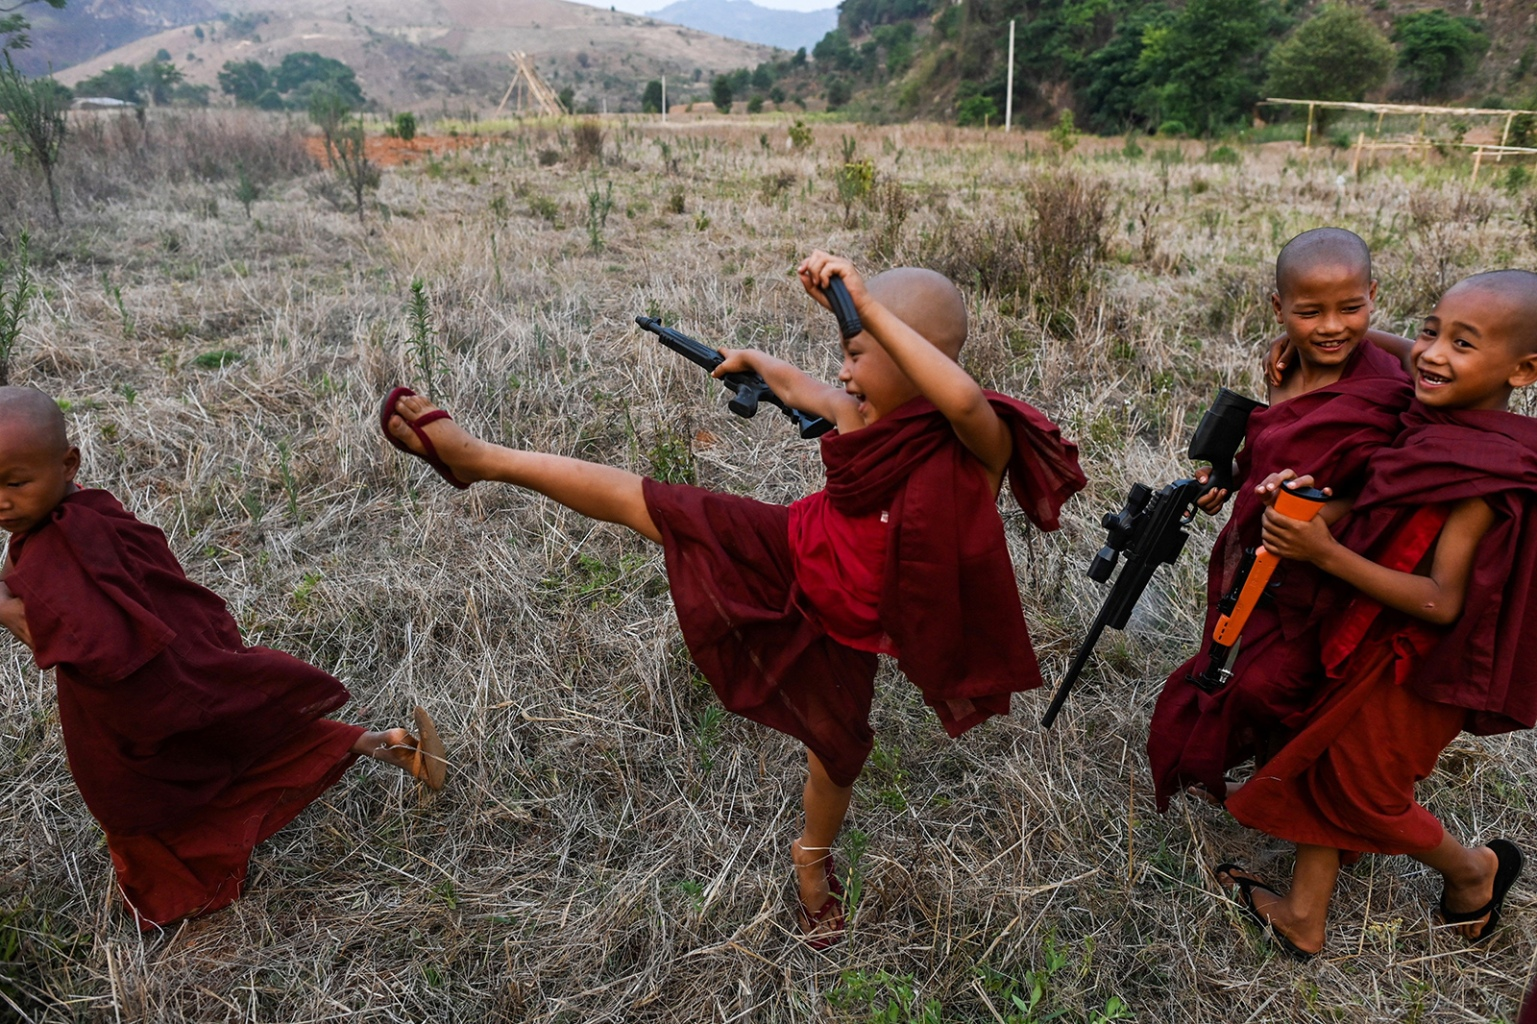 Buddhist novices play with toy guns during the rocket festival in Nantar Shan state in Myanmar on April 28. Myanmar's ethnic Pa'O fire huge, homemade rockets into the sky during an annual call for plentiful rains and a chance for a windfall of cash. YE AUNG THU/AFP/Getty Images